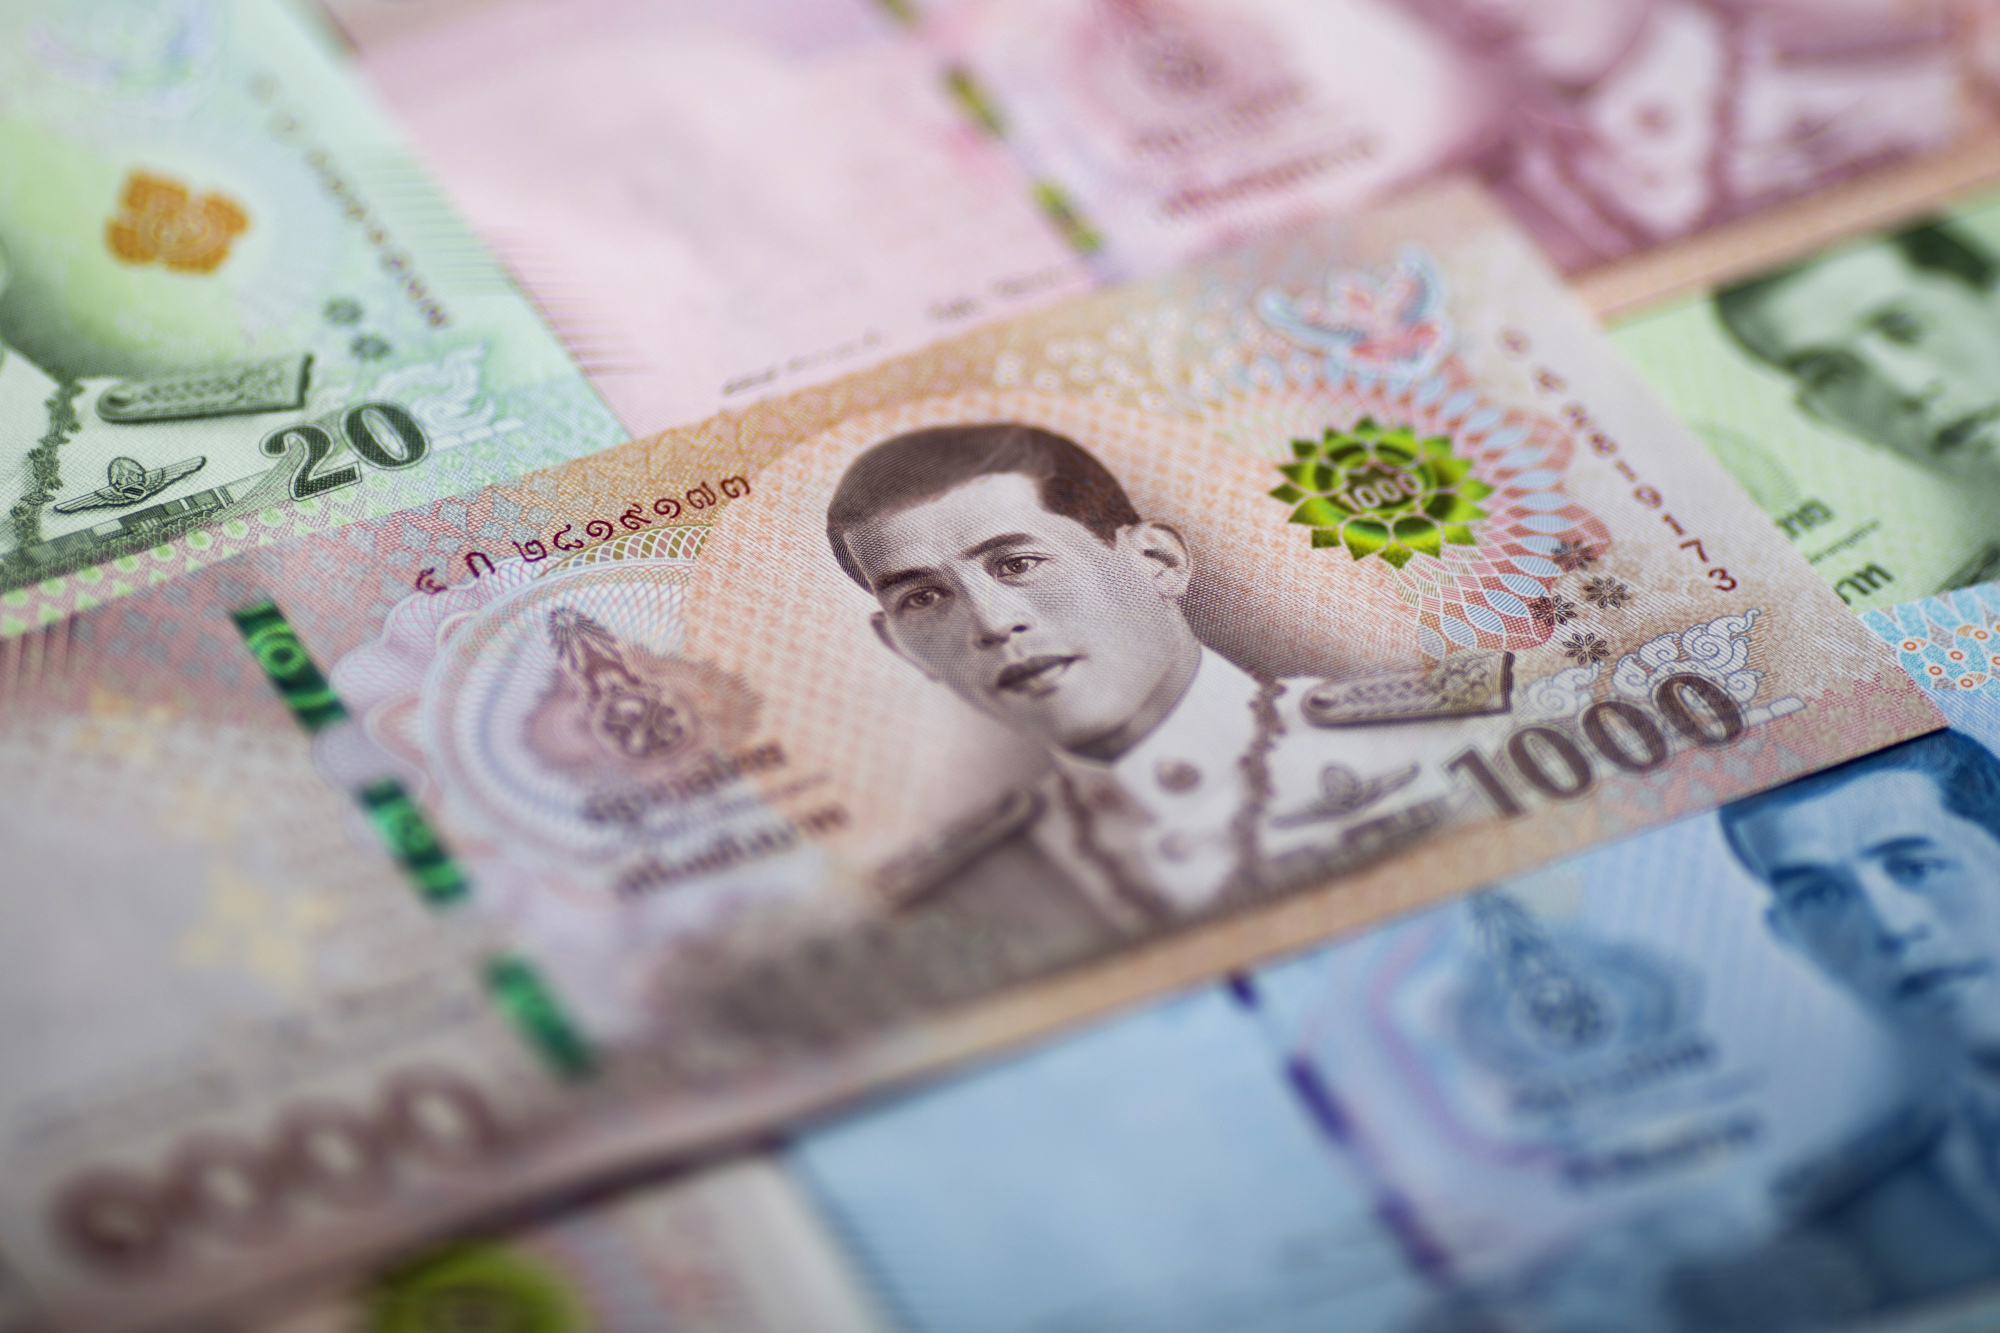 Thailand Looks to Rein in Baht as It Hits 6-Year High